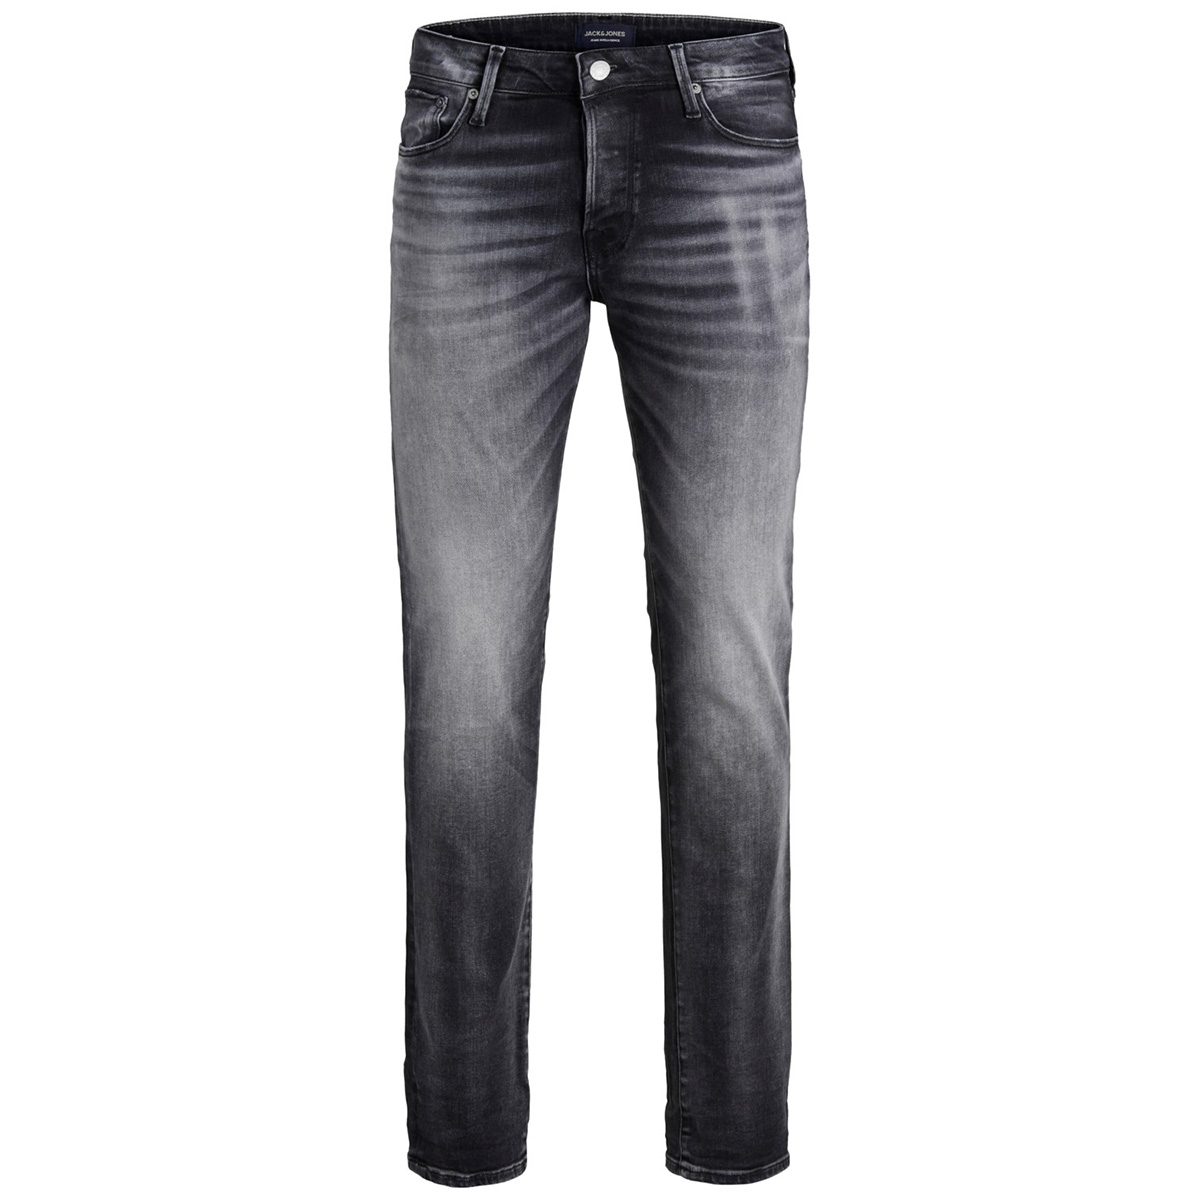 jjitim jjicon jj 171 noos 12159163 jack & jones jeans black denim